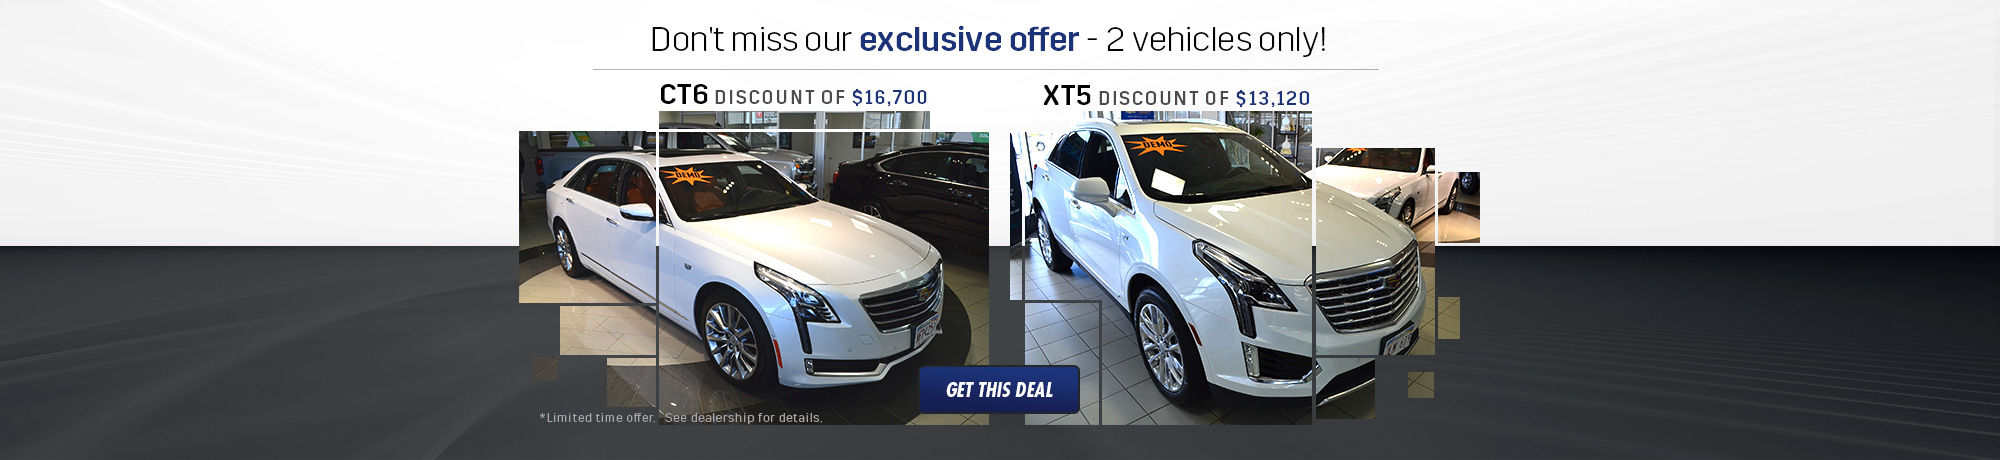 Deal CT6 and XT5